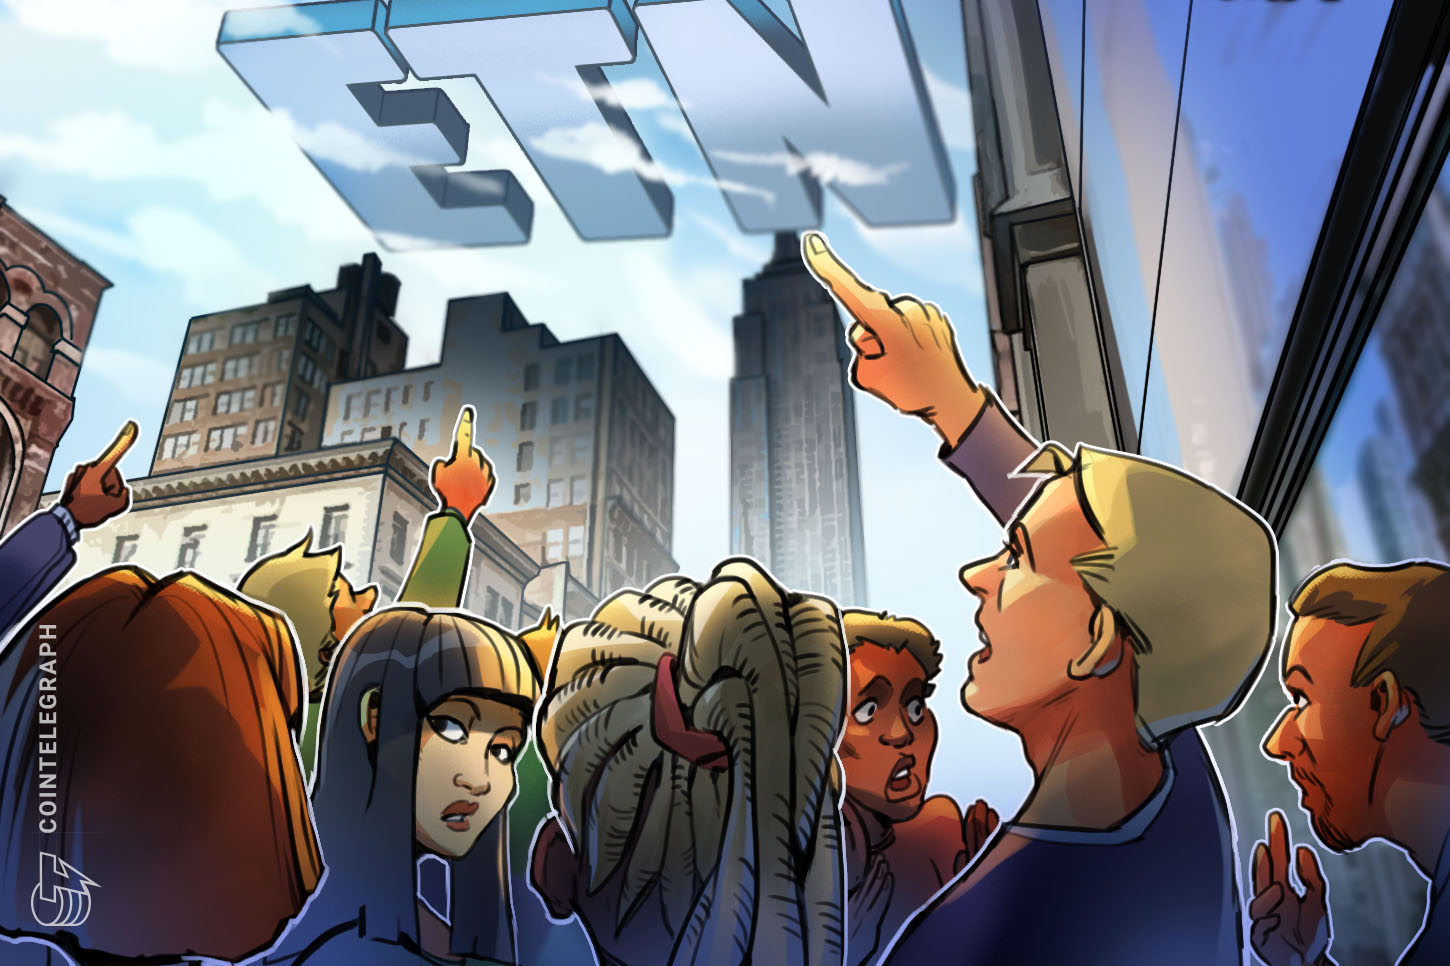 VanEck launches physically-backed Bitcoin ETN on Deutsche Börse Xetra